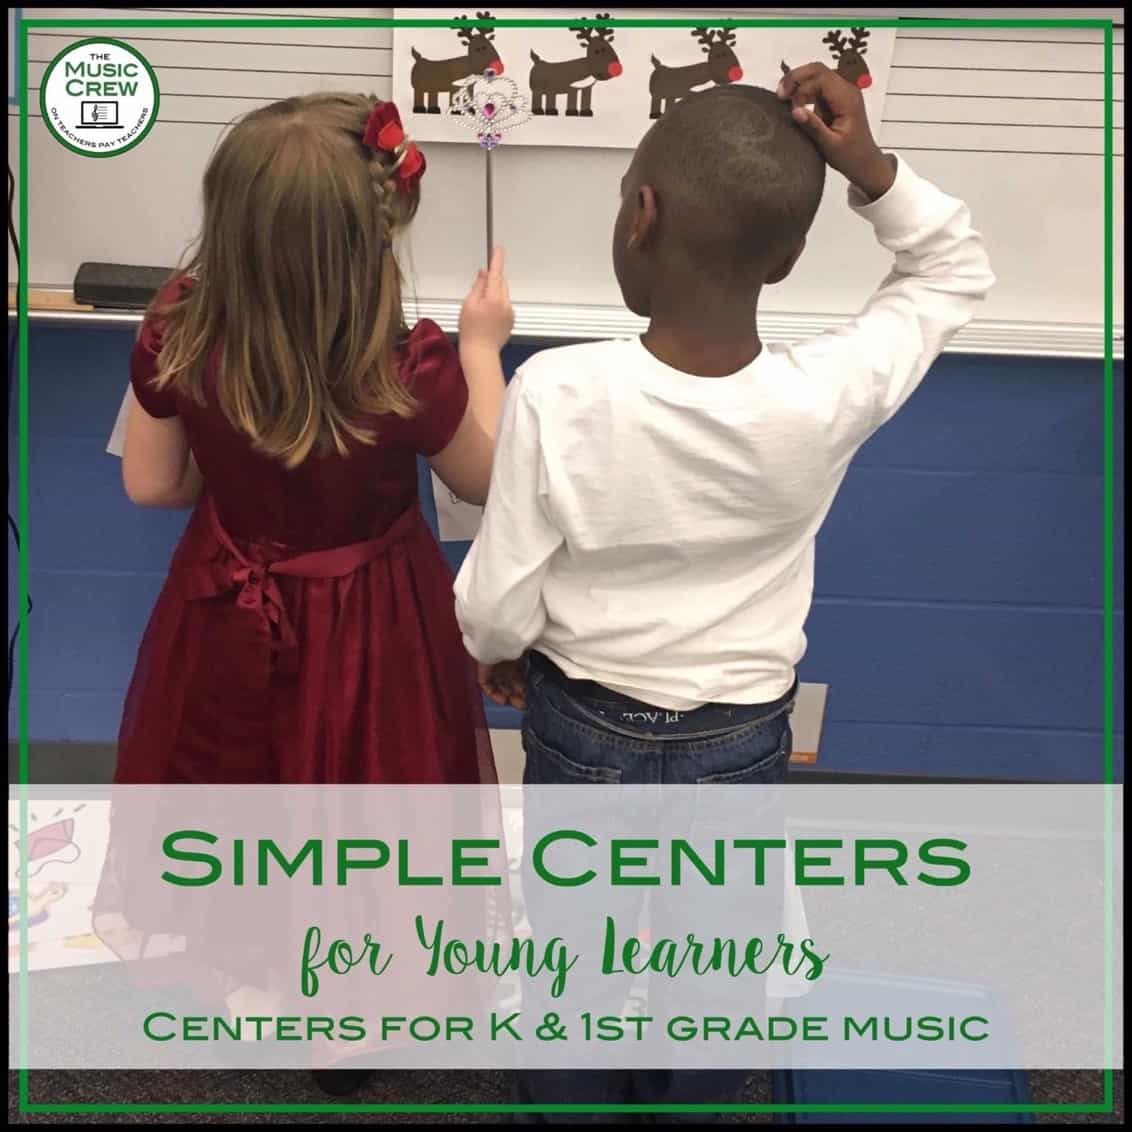 Simple Centers For Young Learners